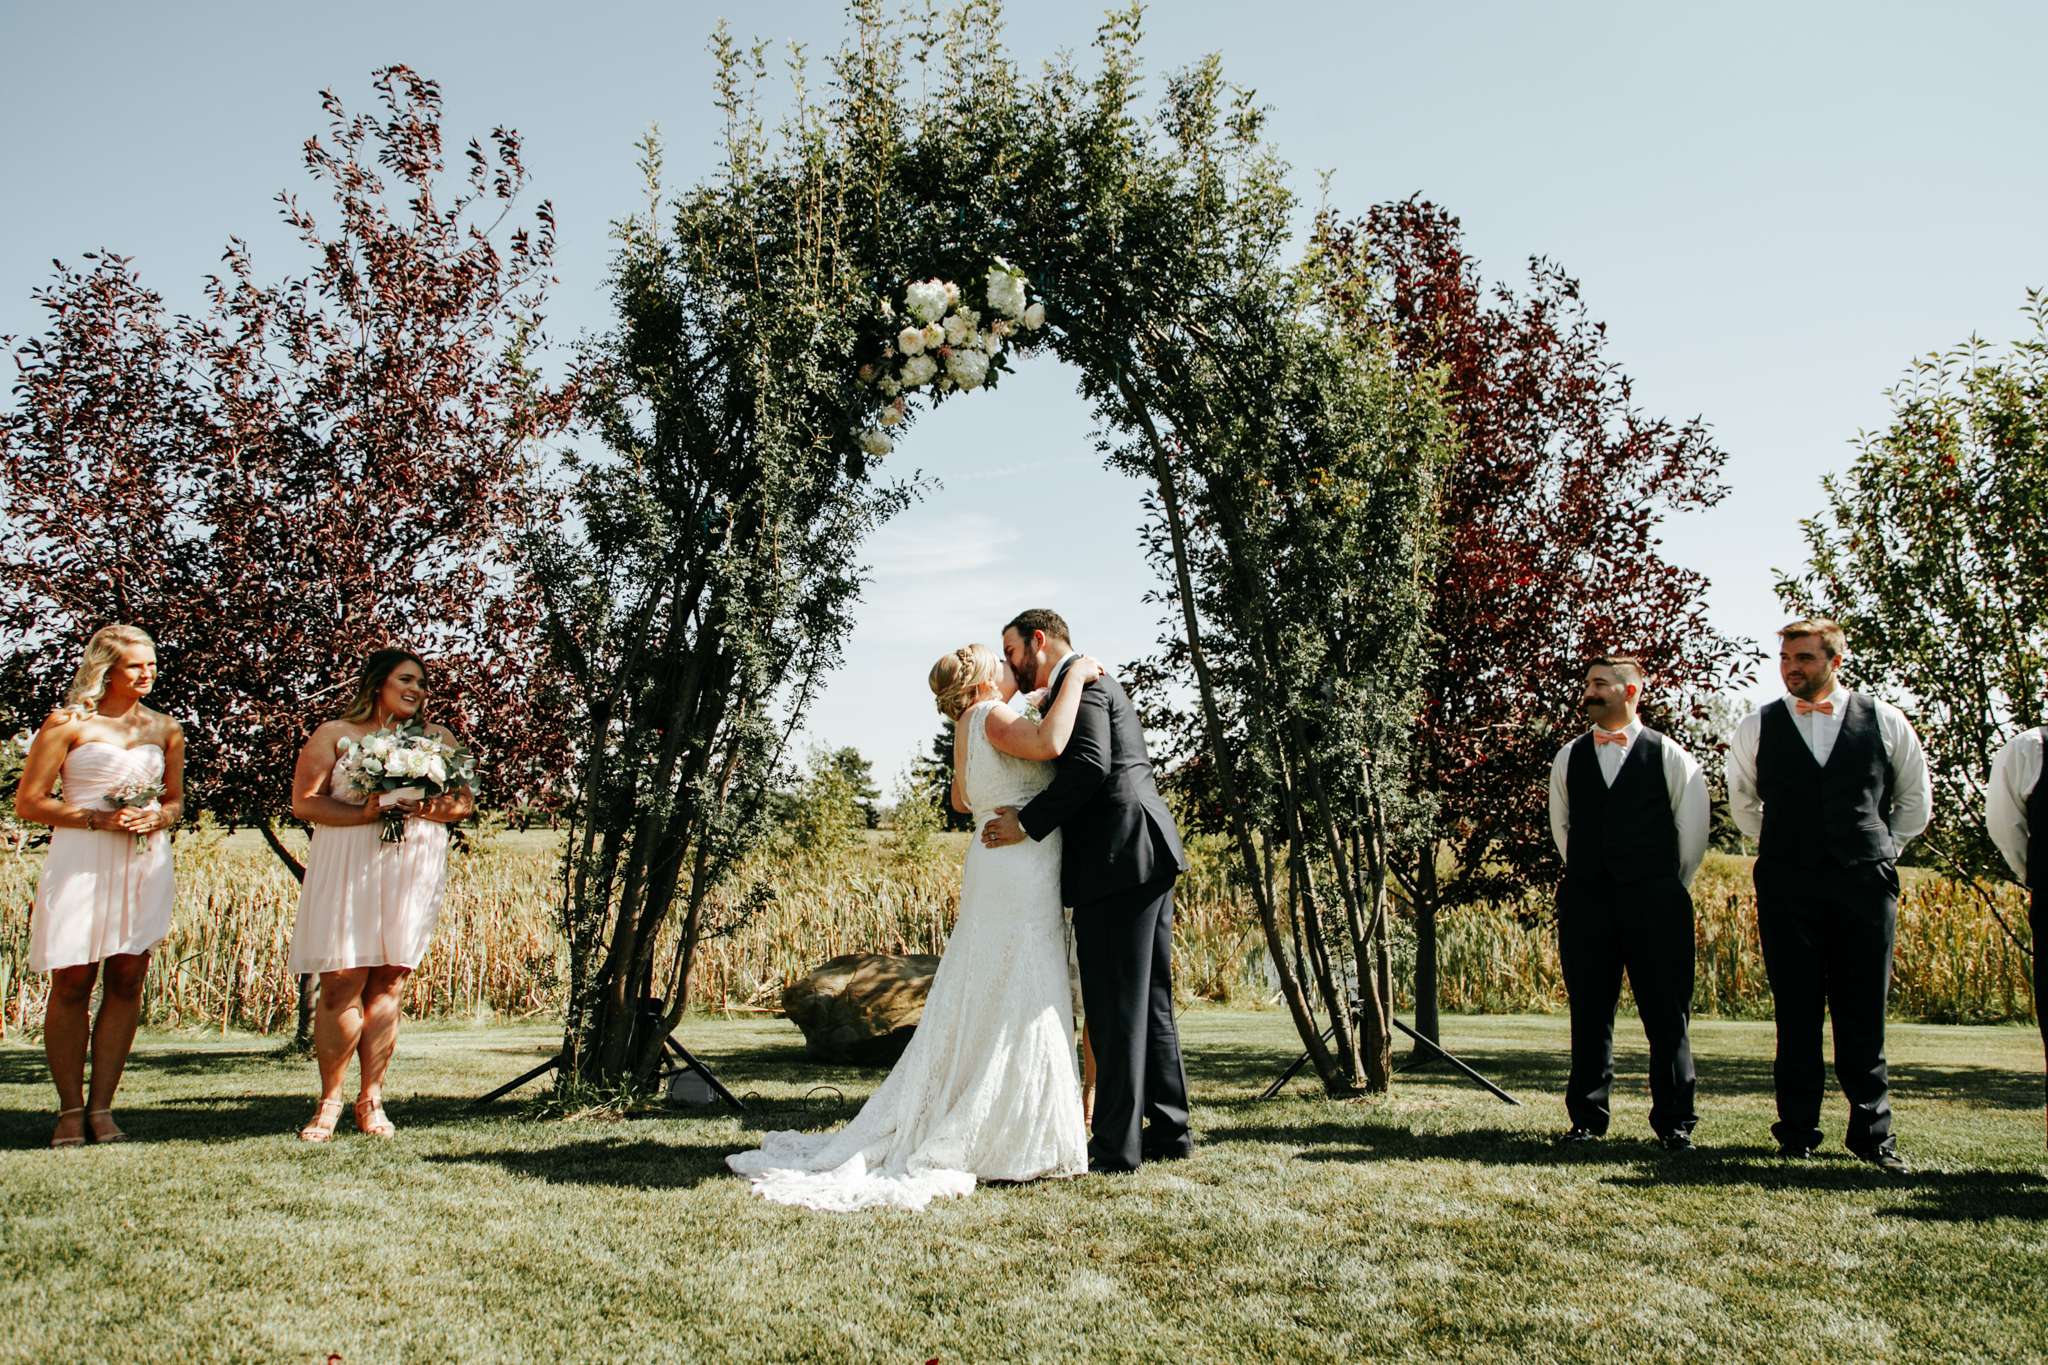 red-deer-wedding-photographer-love-and-be-loved-photography-emily-gab-photo-image-picture-77.jpg